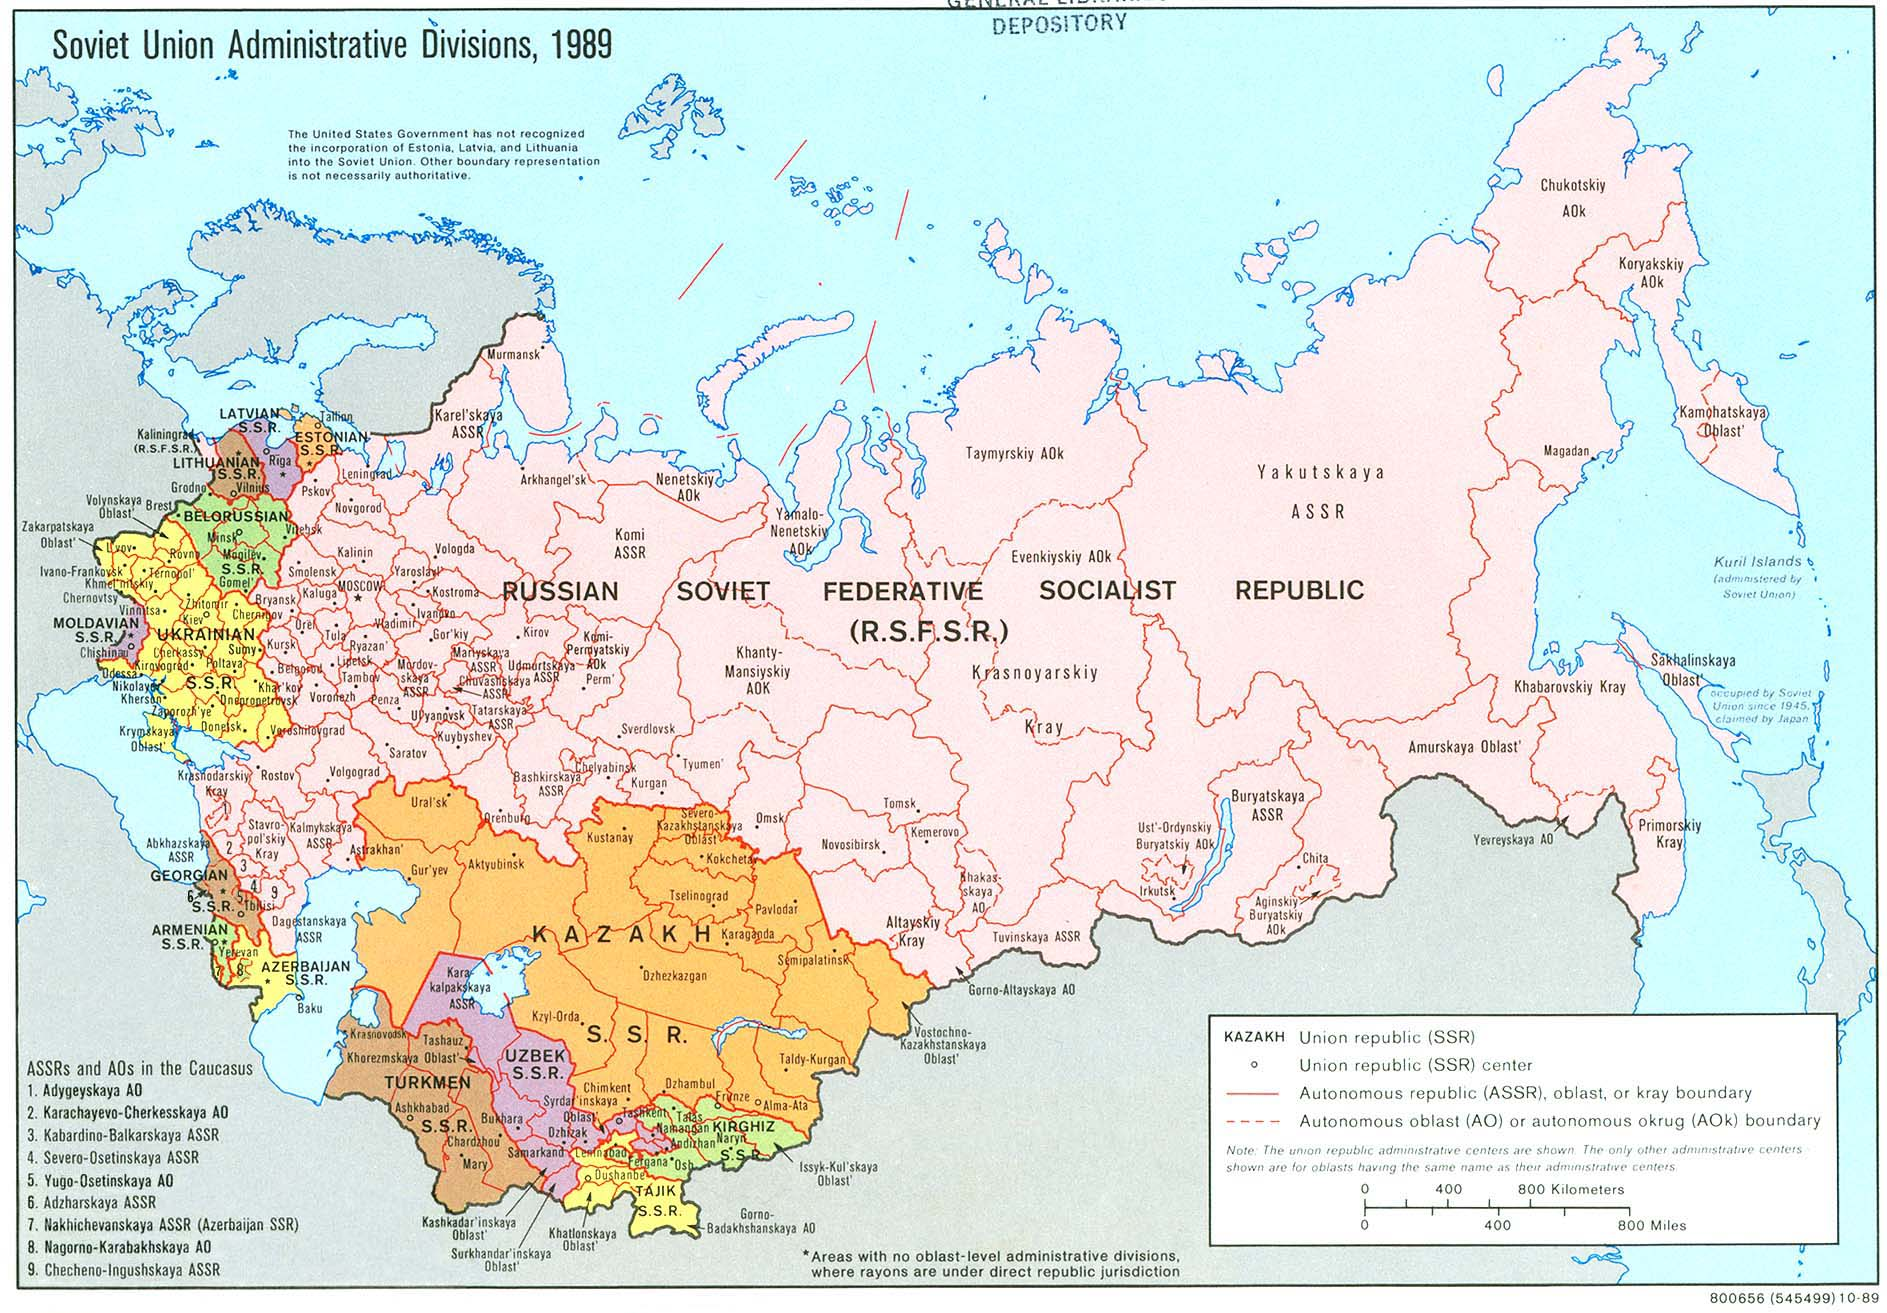 File:Soviet Union Administrative Divisions 1989.jpg - Wikimedia Commons